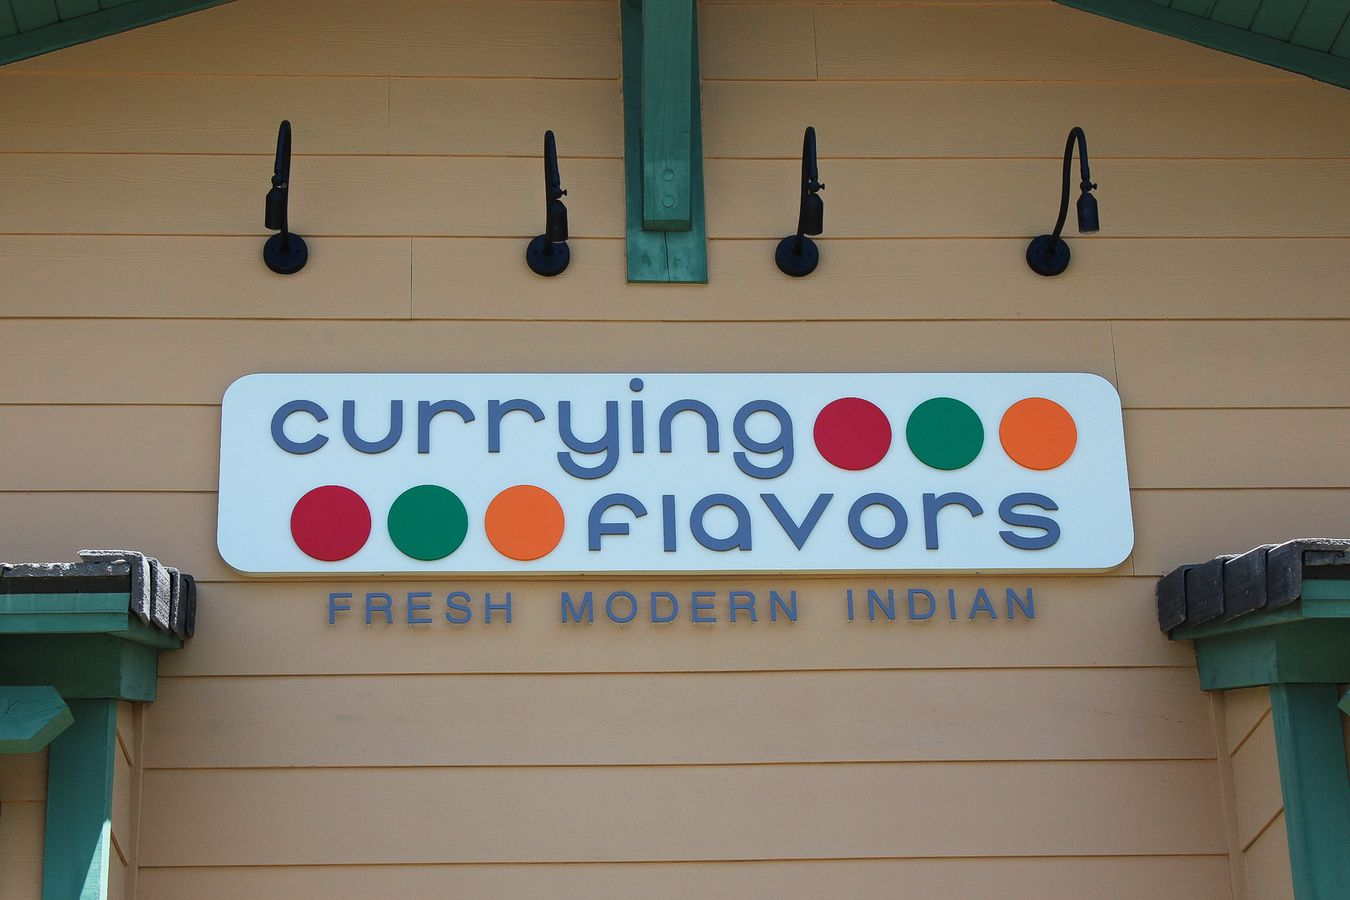 Currying flavors restaurant sign